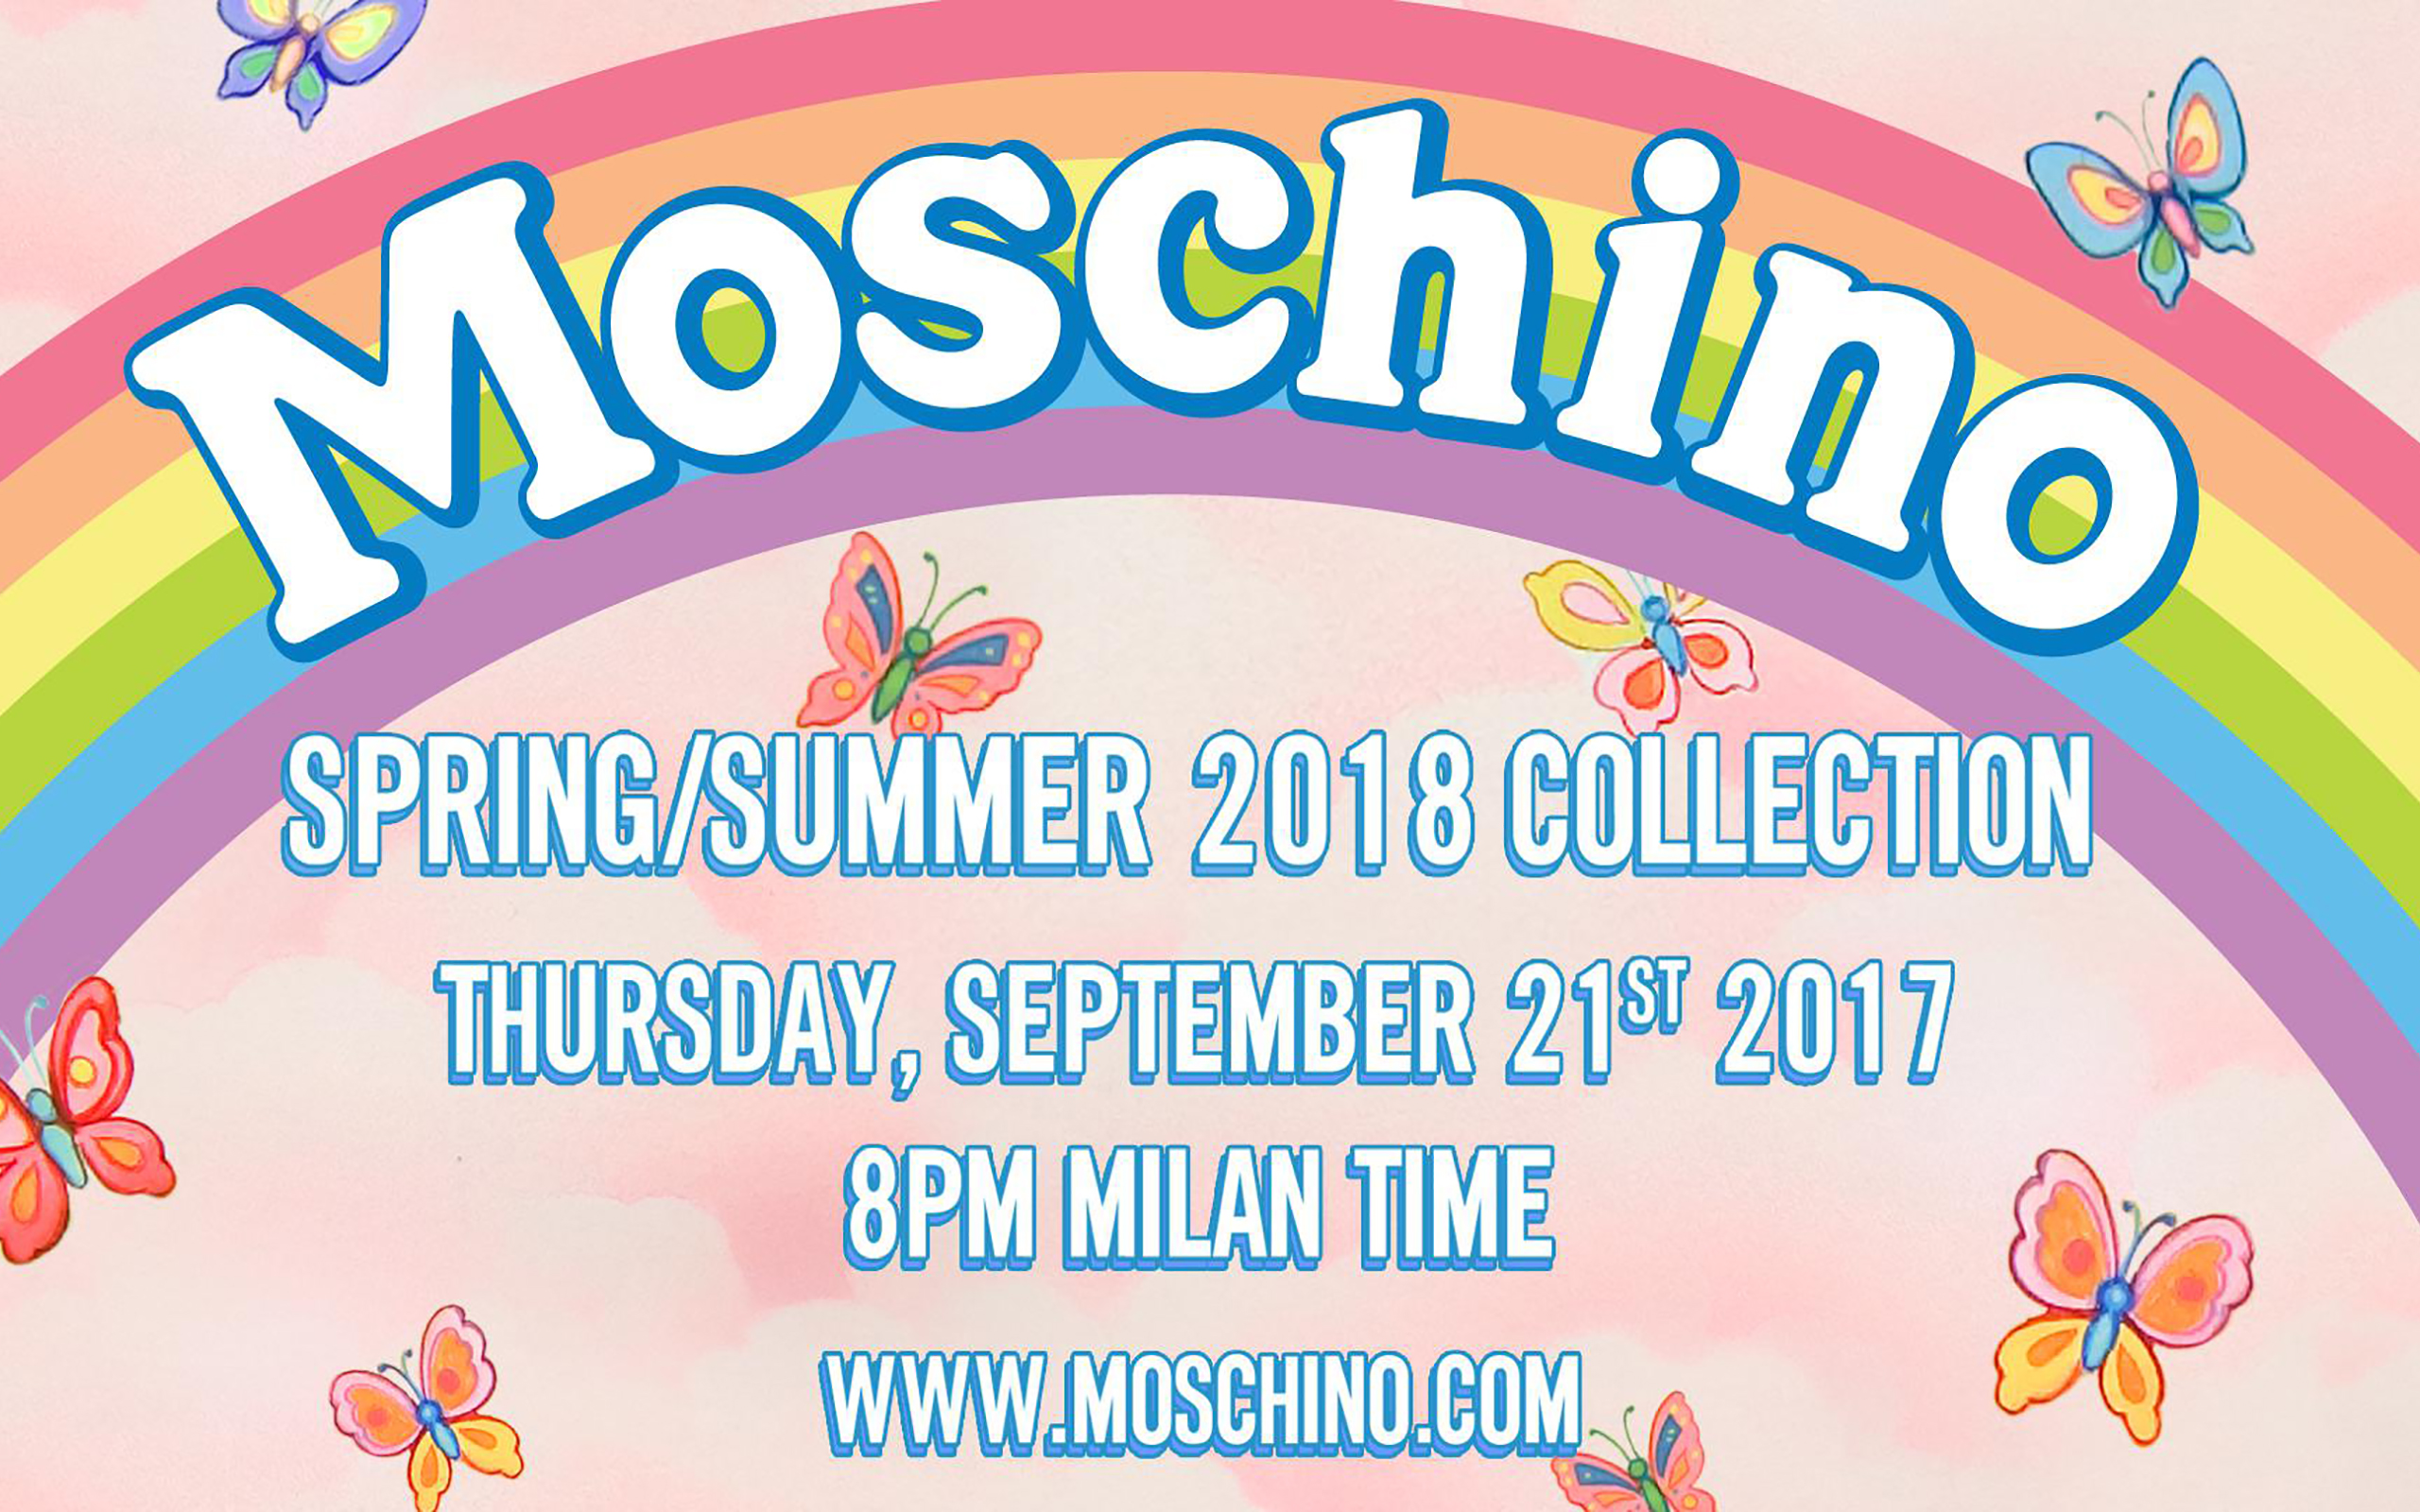 Now On Live: Moschino Spring – Summer 2018 Collection